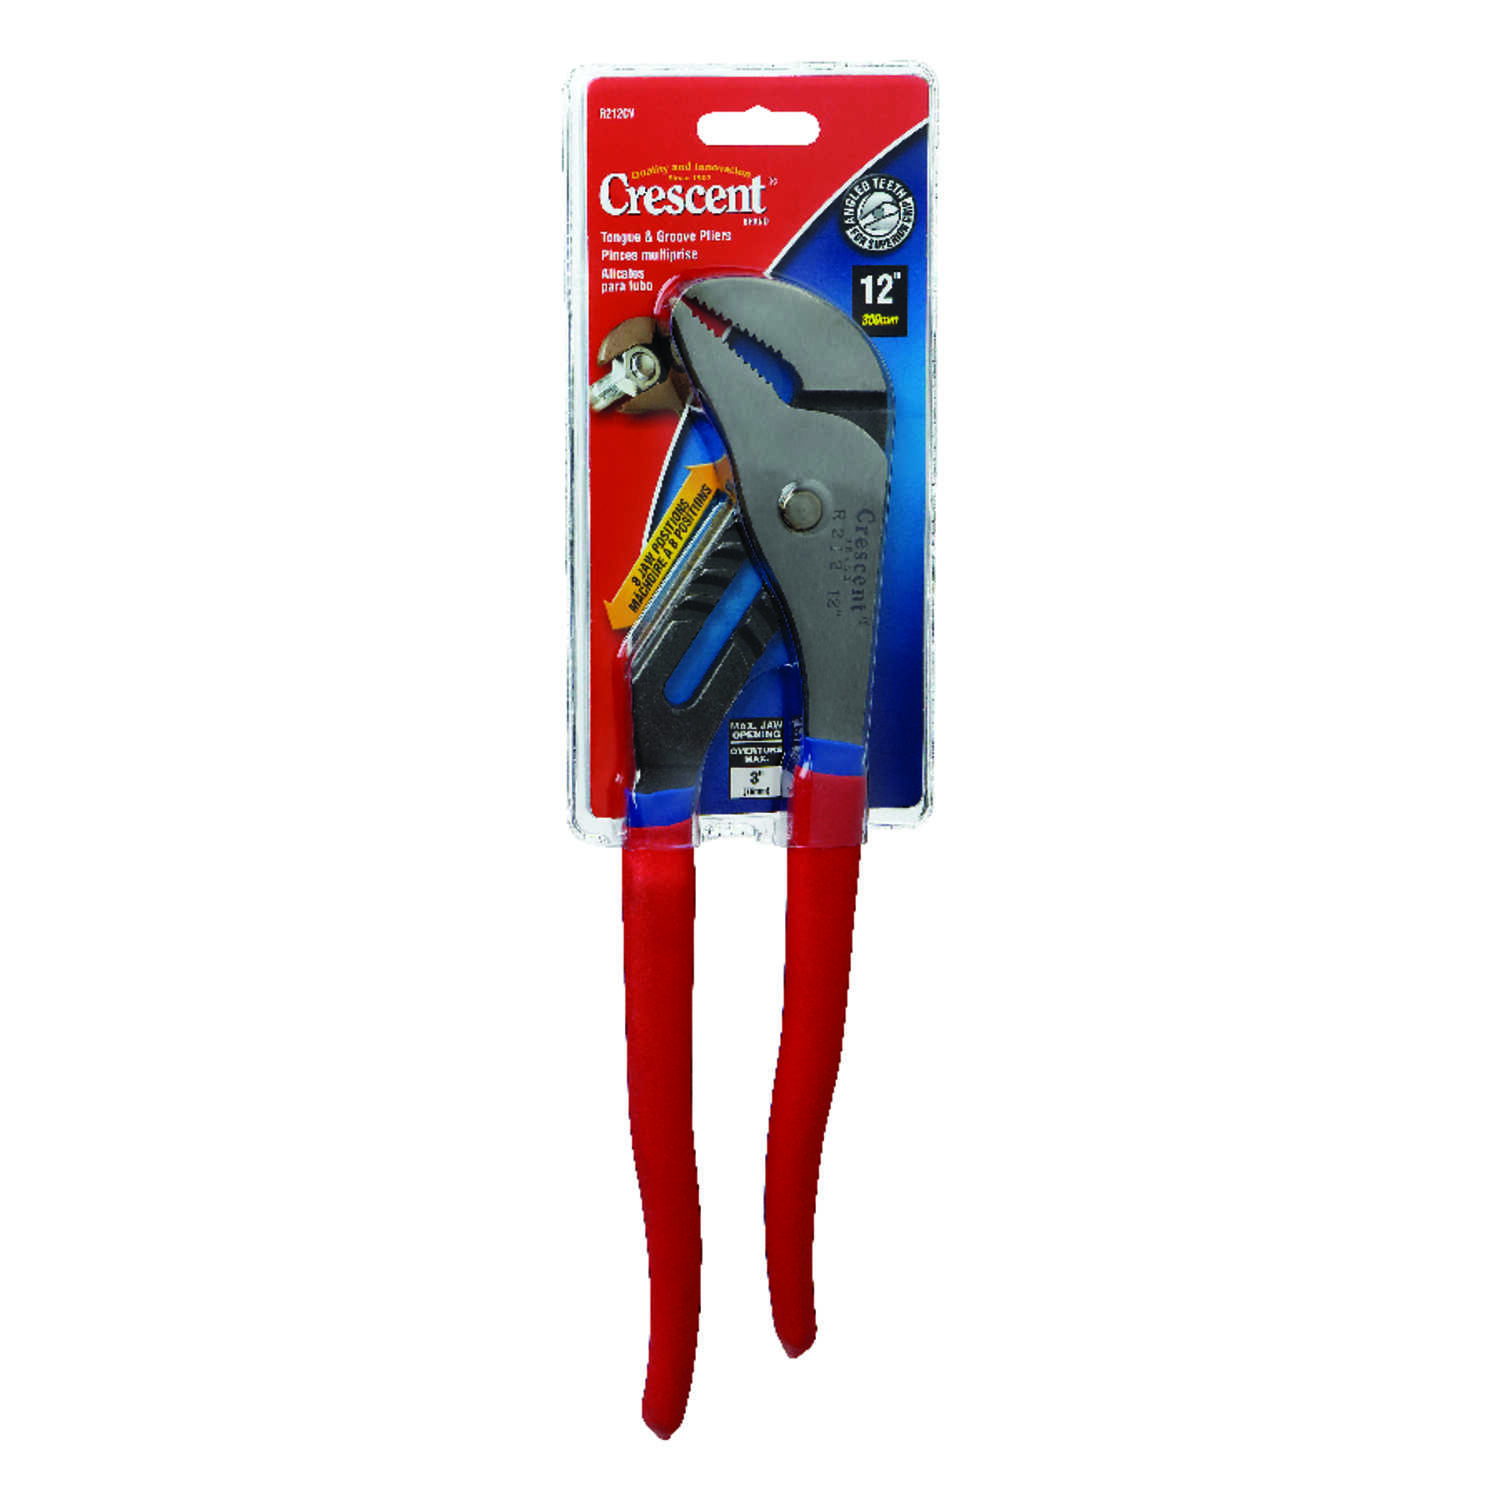 Crescent  12 in. Alloy Steel  Tongue and Groove Pliers  Red  1